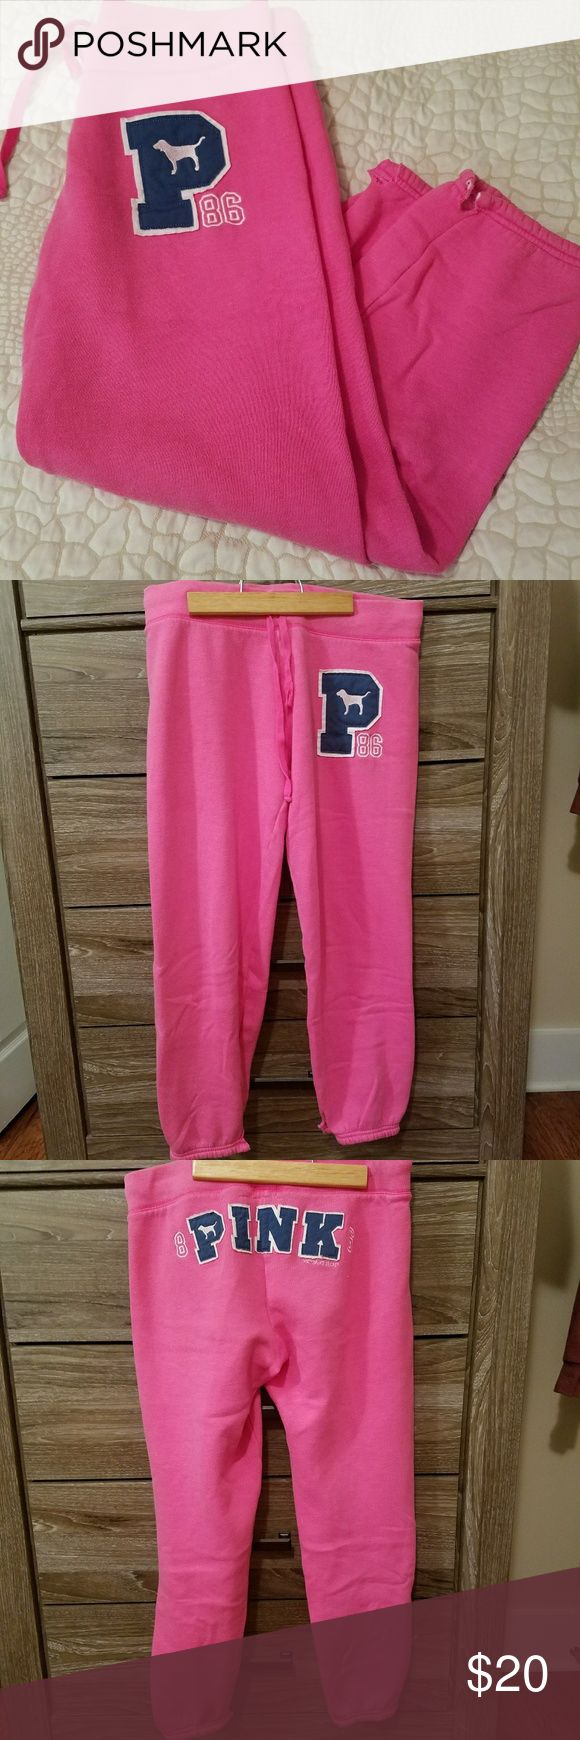 Victoria's Secret PINK capri pants Classic pink boyfriend style sweatpants with dark blue lettering. Size small. Lightly used and great condition. Drawstring at waist.  Very comfortable! Victoria's Secret Pants Capris